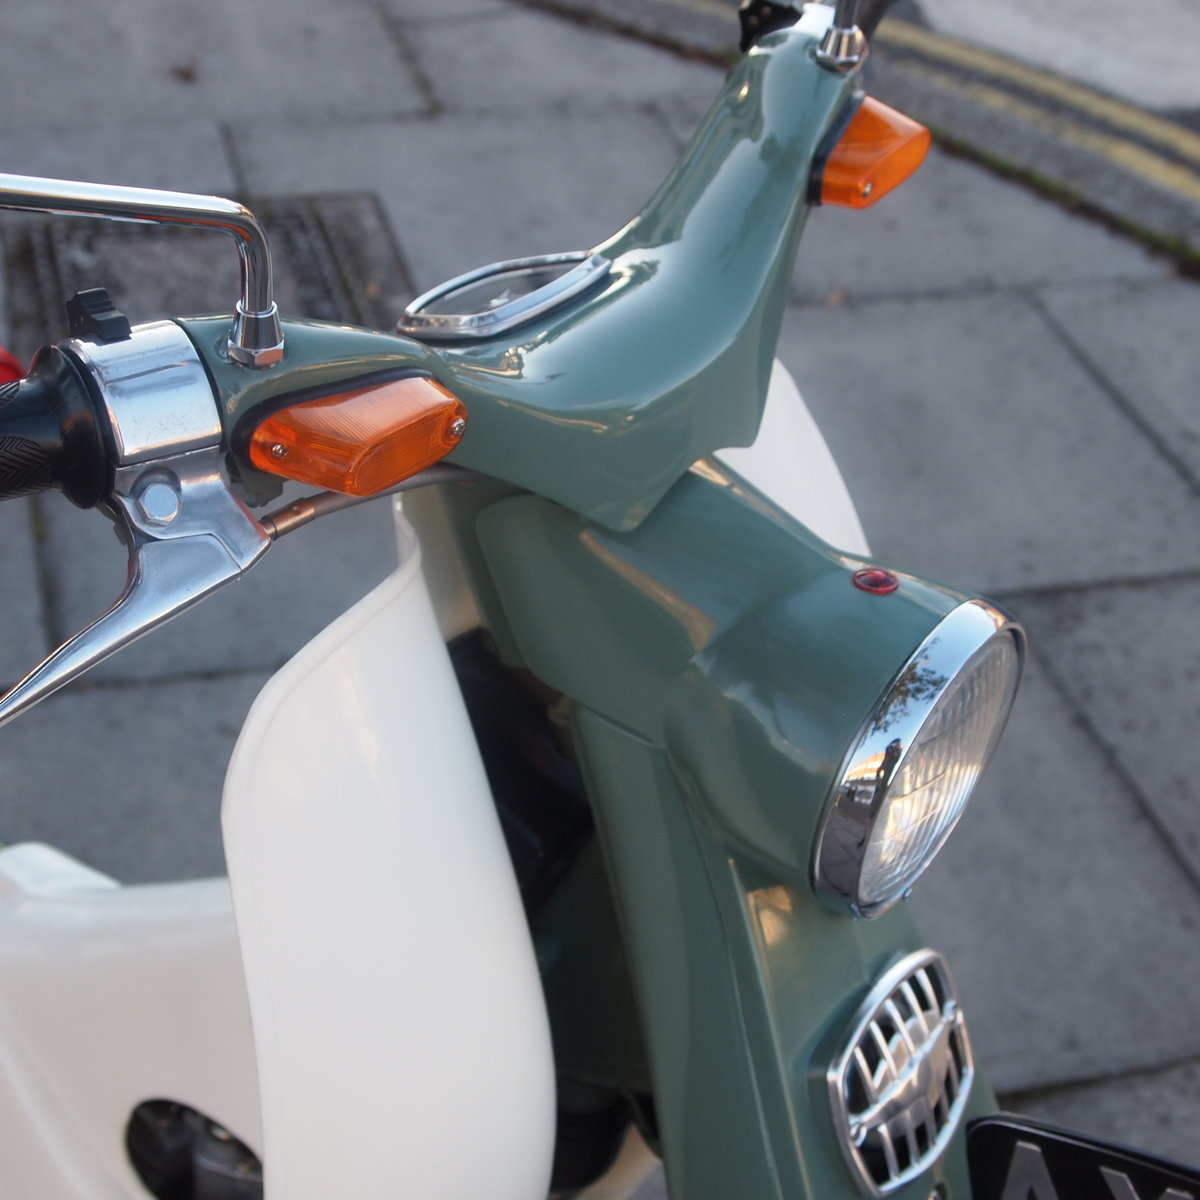 1964 Honda C100 49cc Enjoy L@@King at Pictures. For Sale (picture 6 of 6)